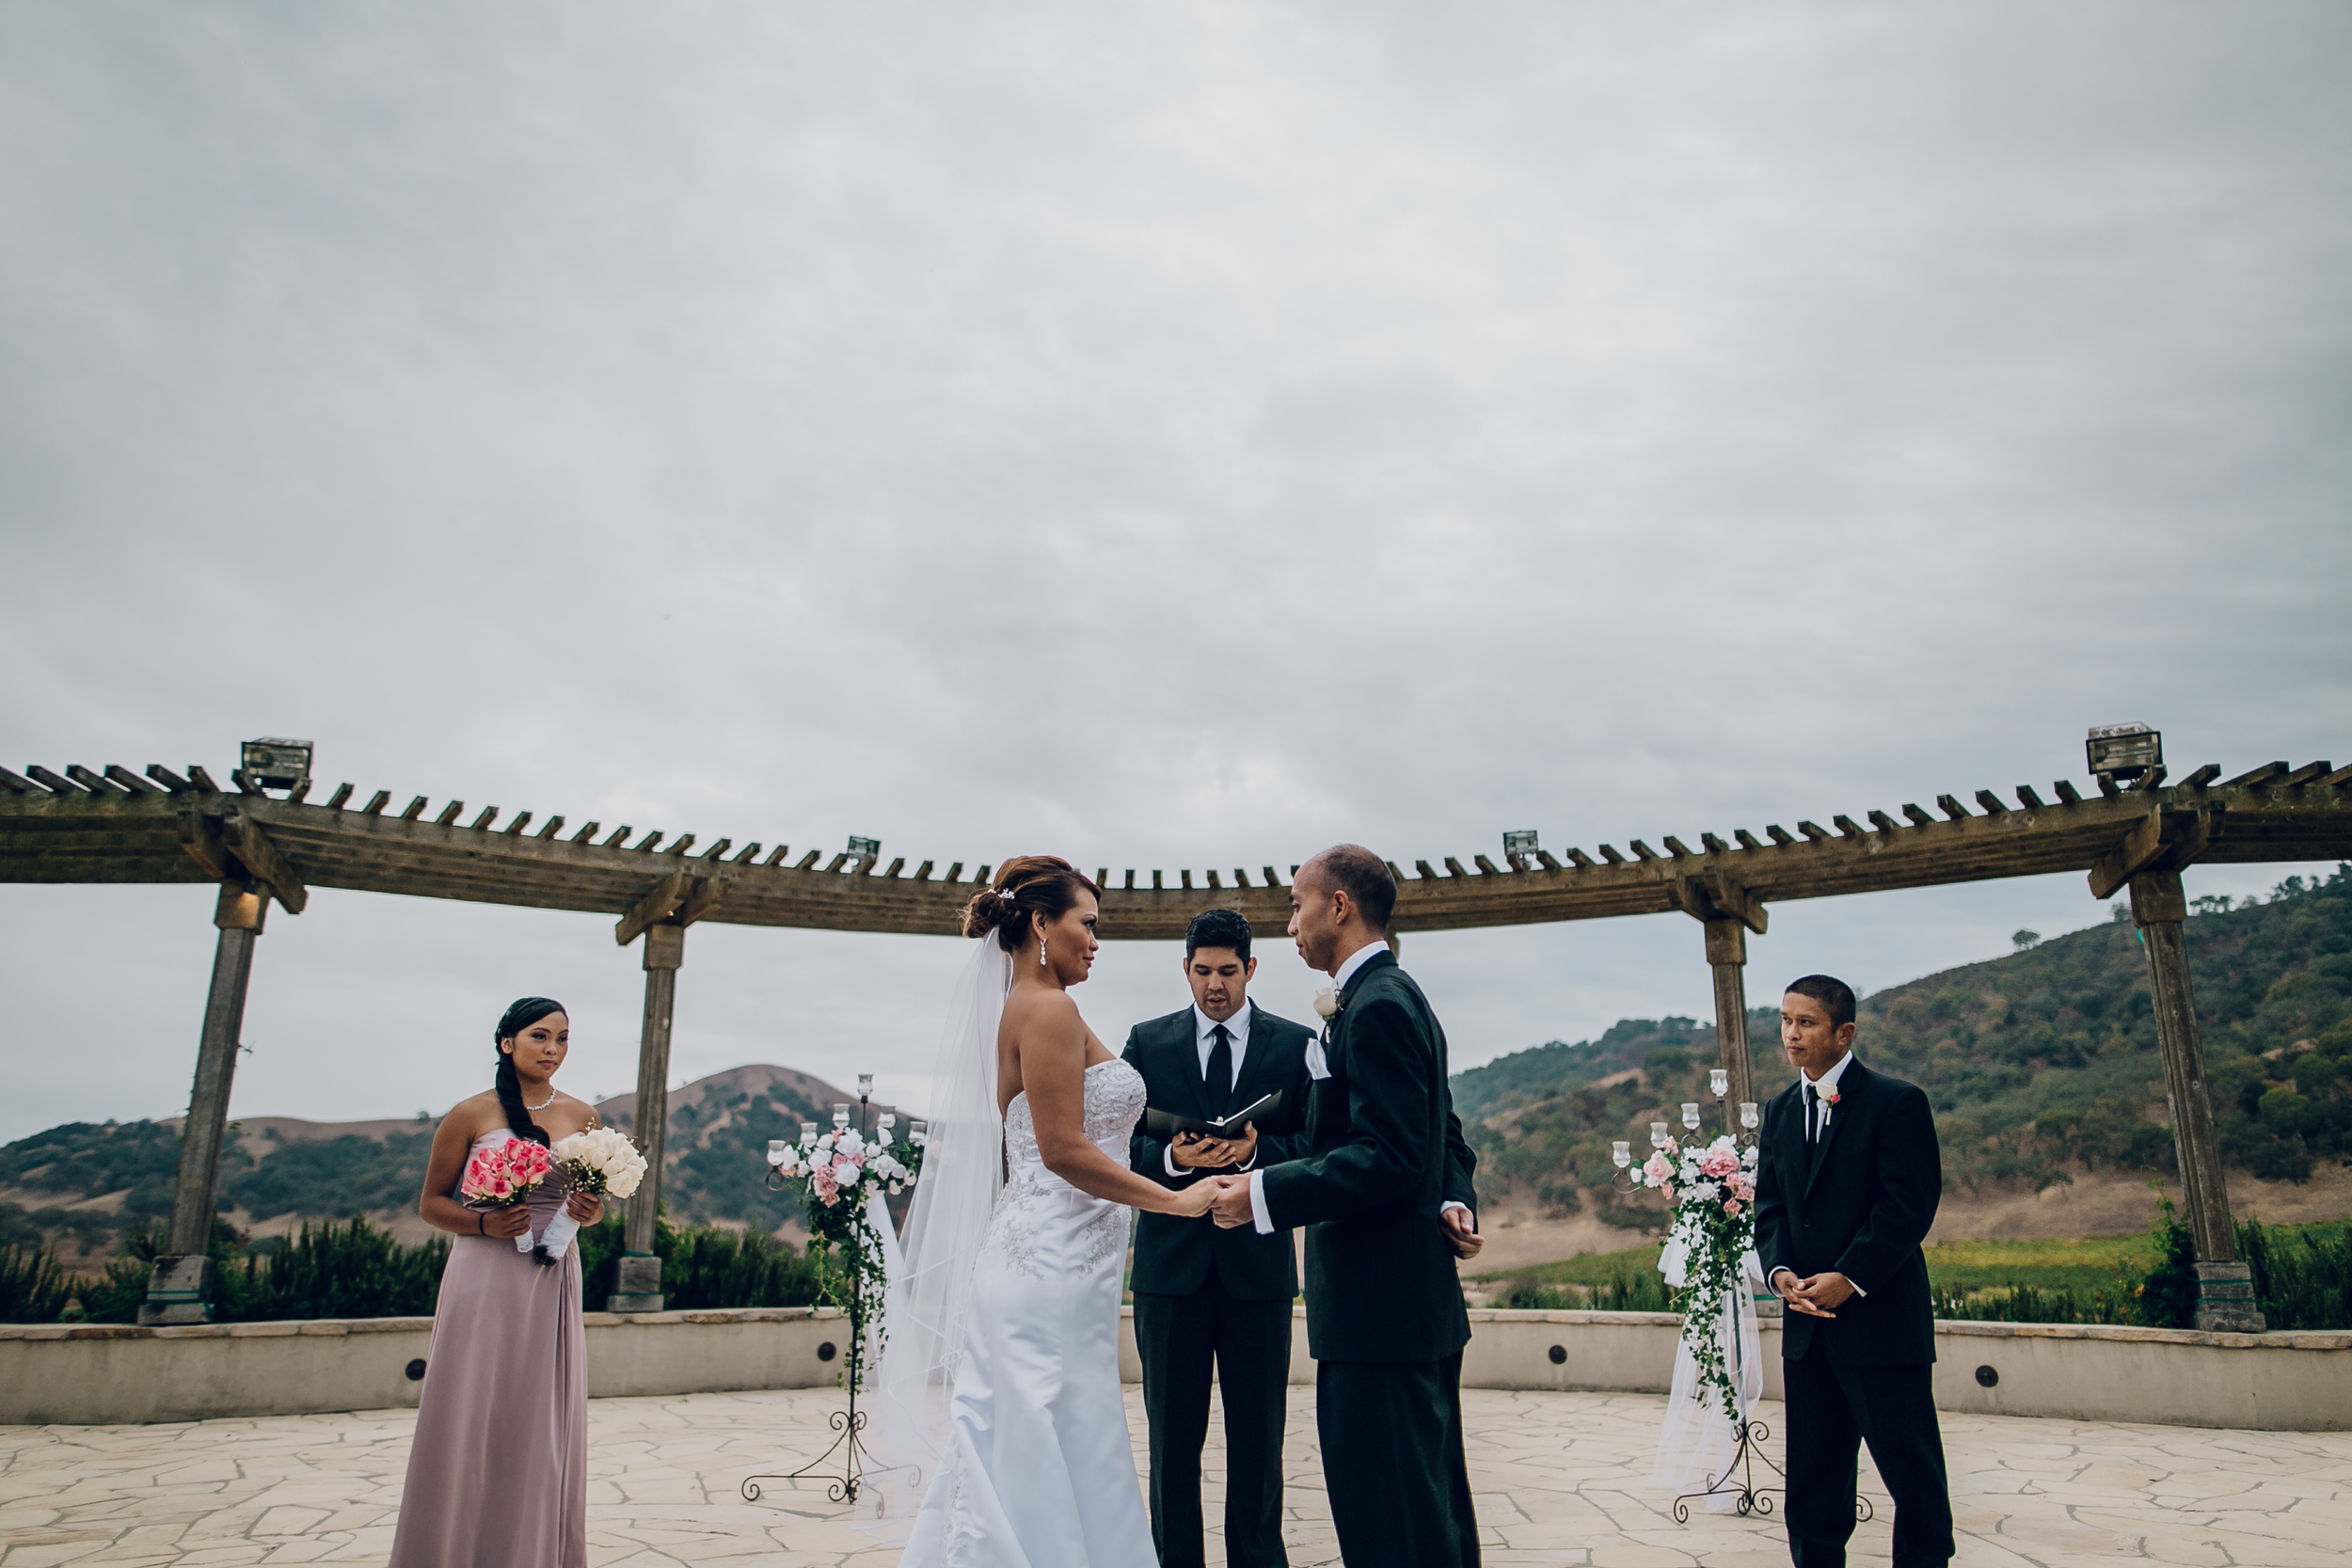 Shiela + Lester's Wedding 9-30-15 675.jpg